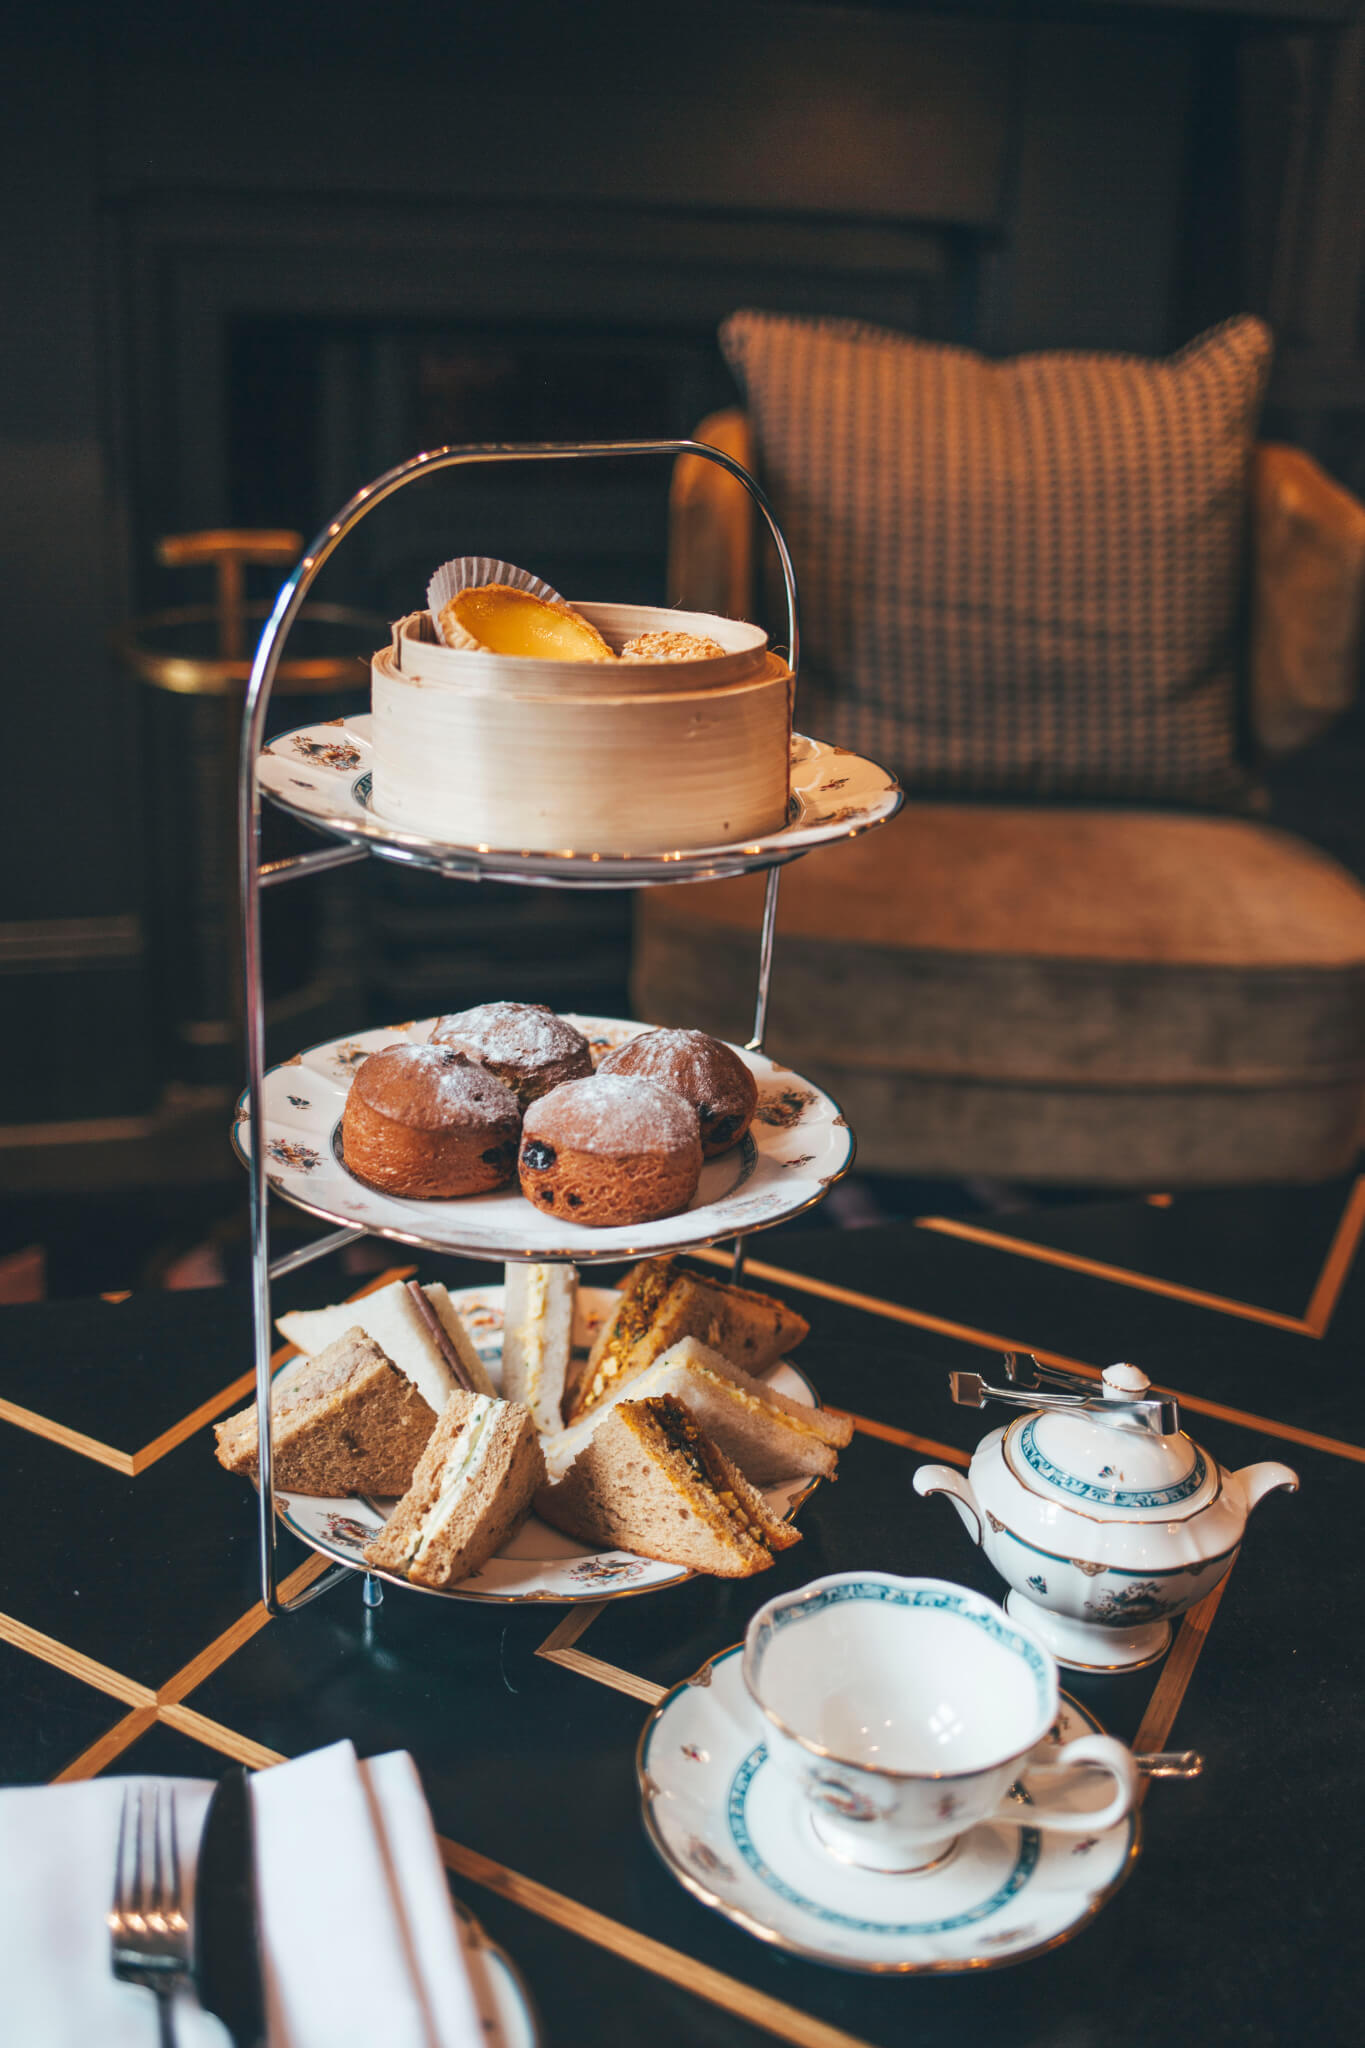 Our afternnon tea at The Academy Hotel Bloomsbury